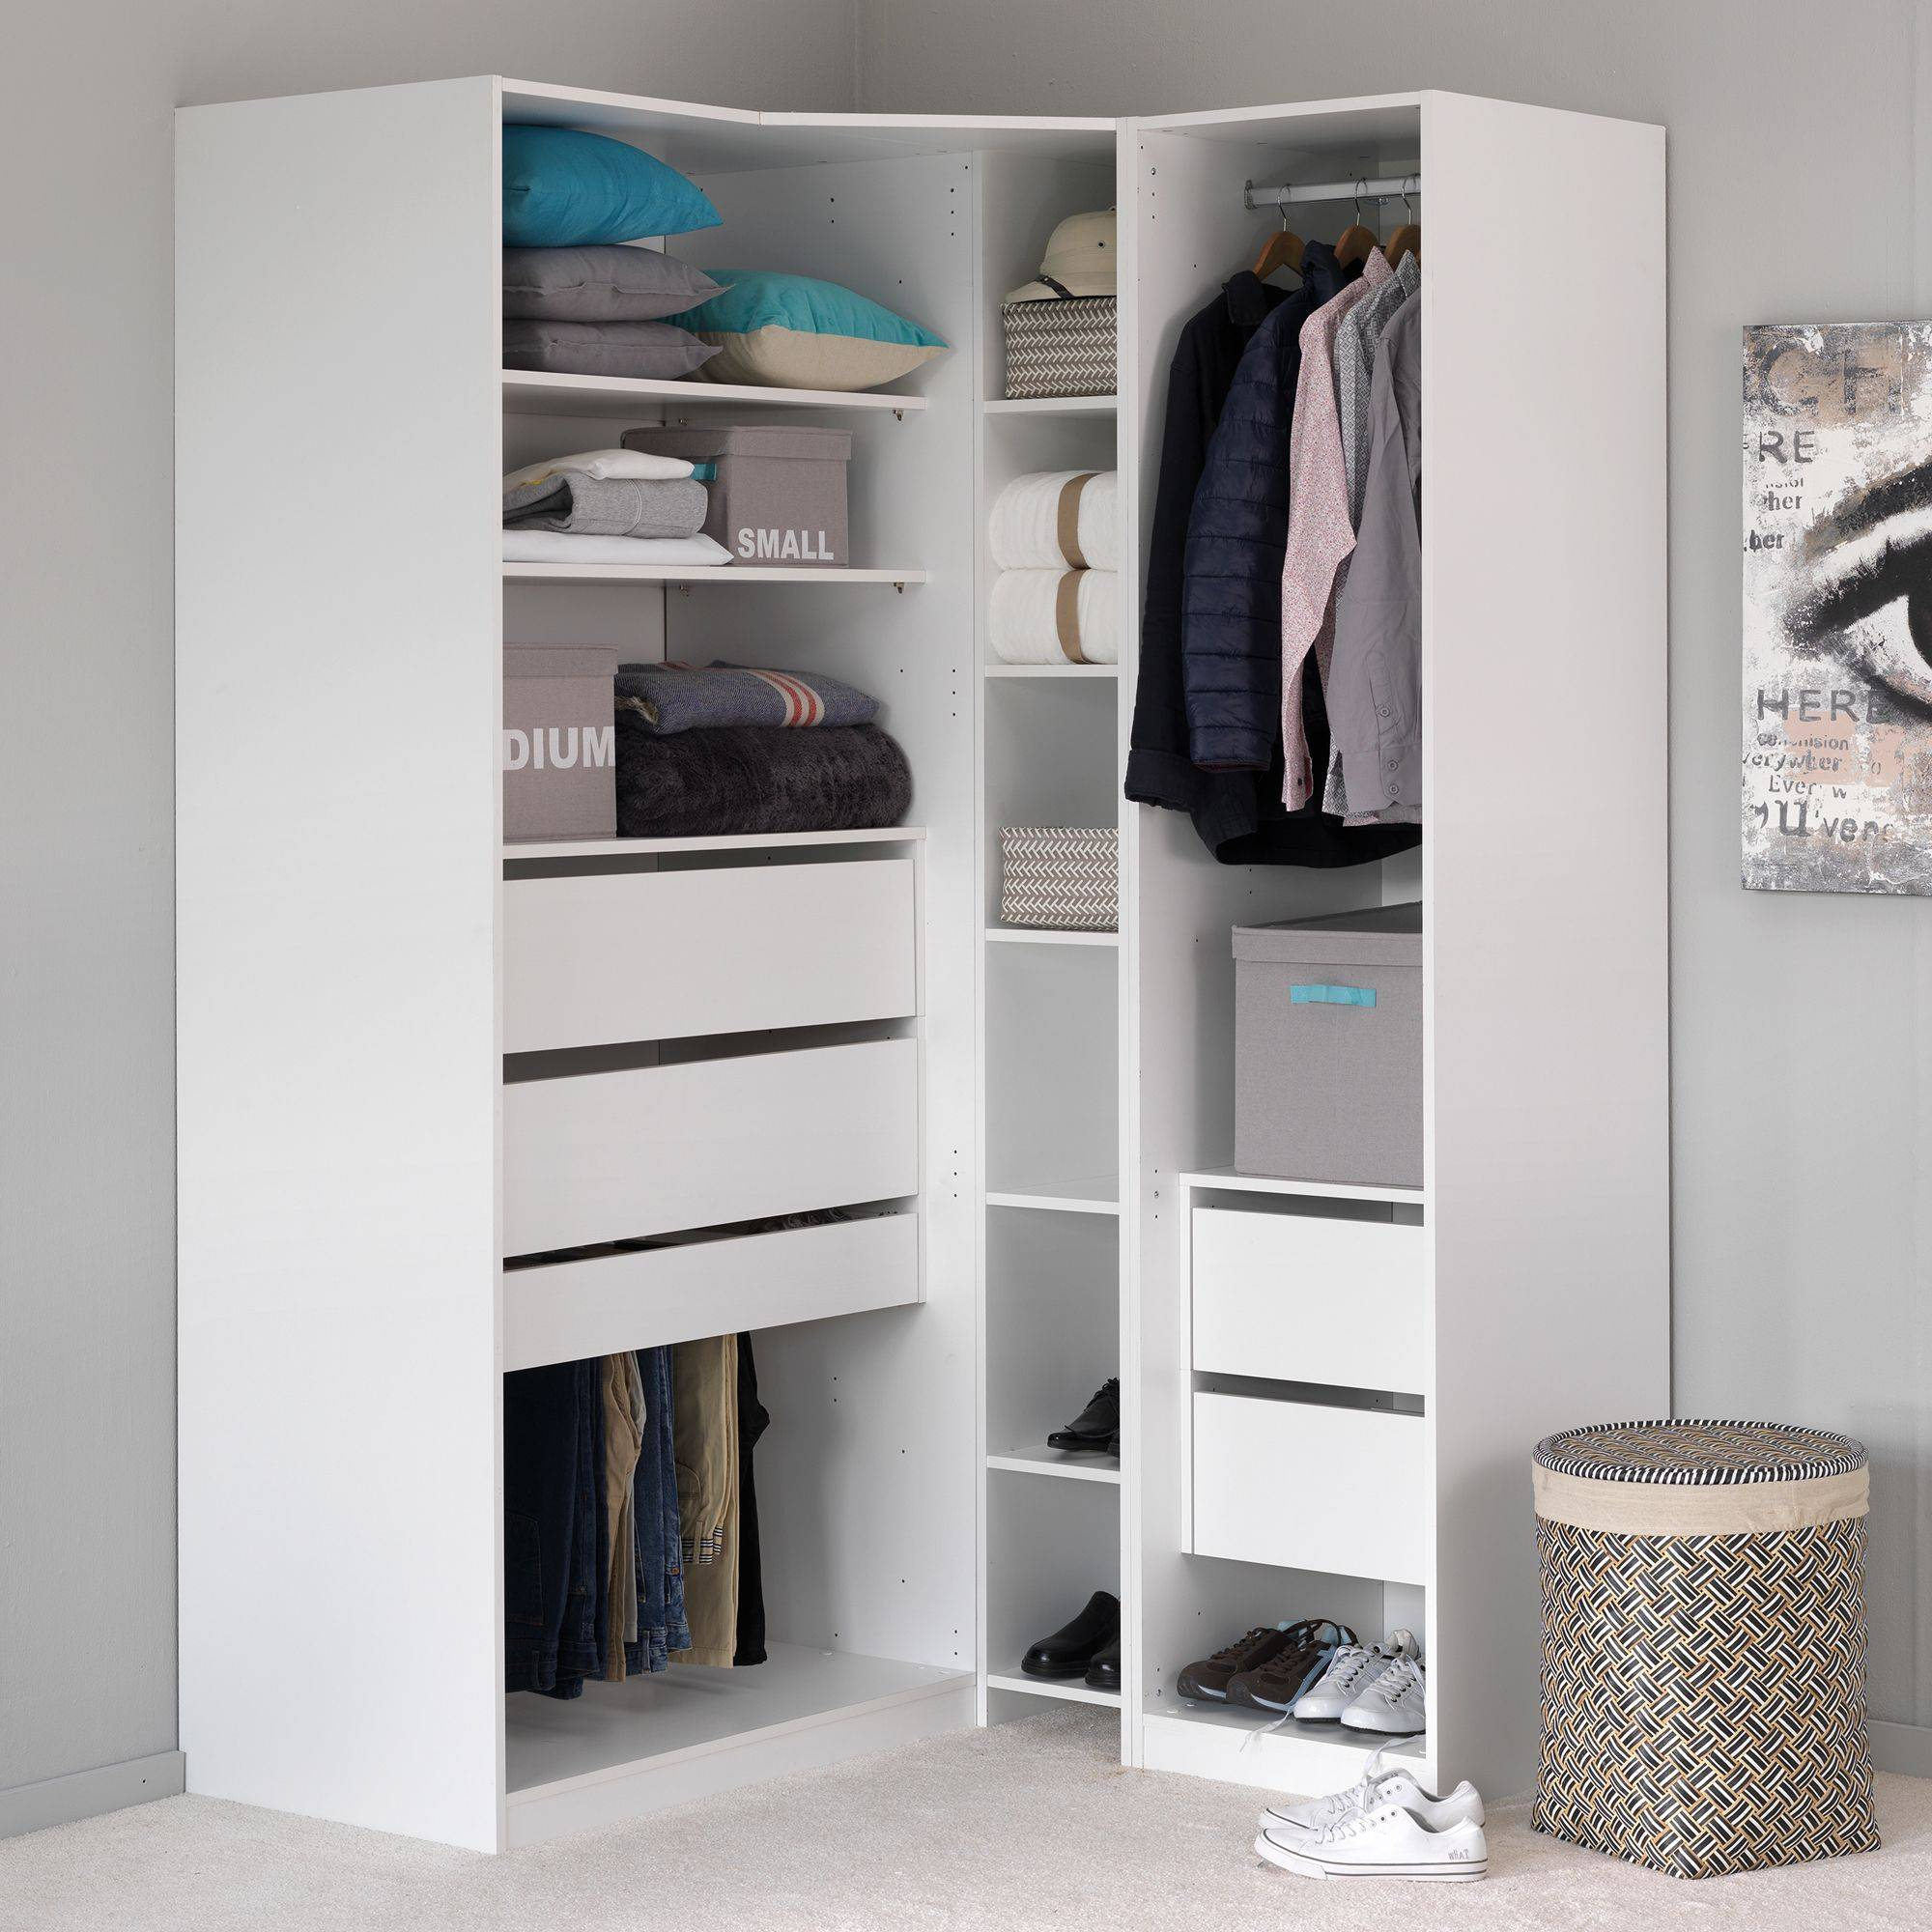 Comment bien am nager un dressing for Magasin de meubles ikea le plus proche